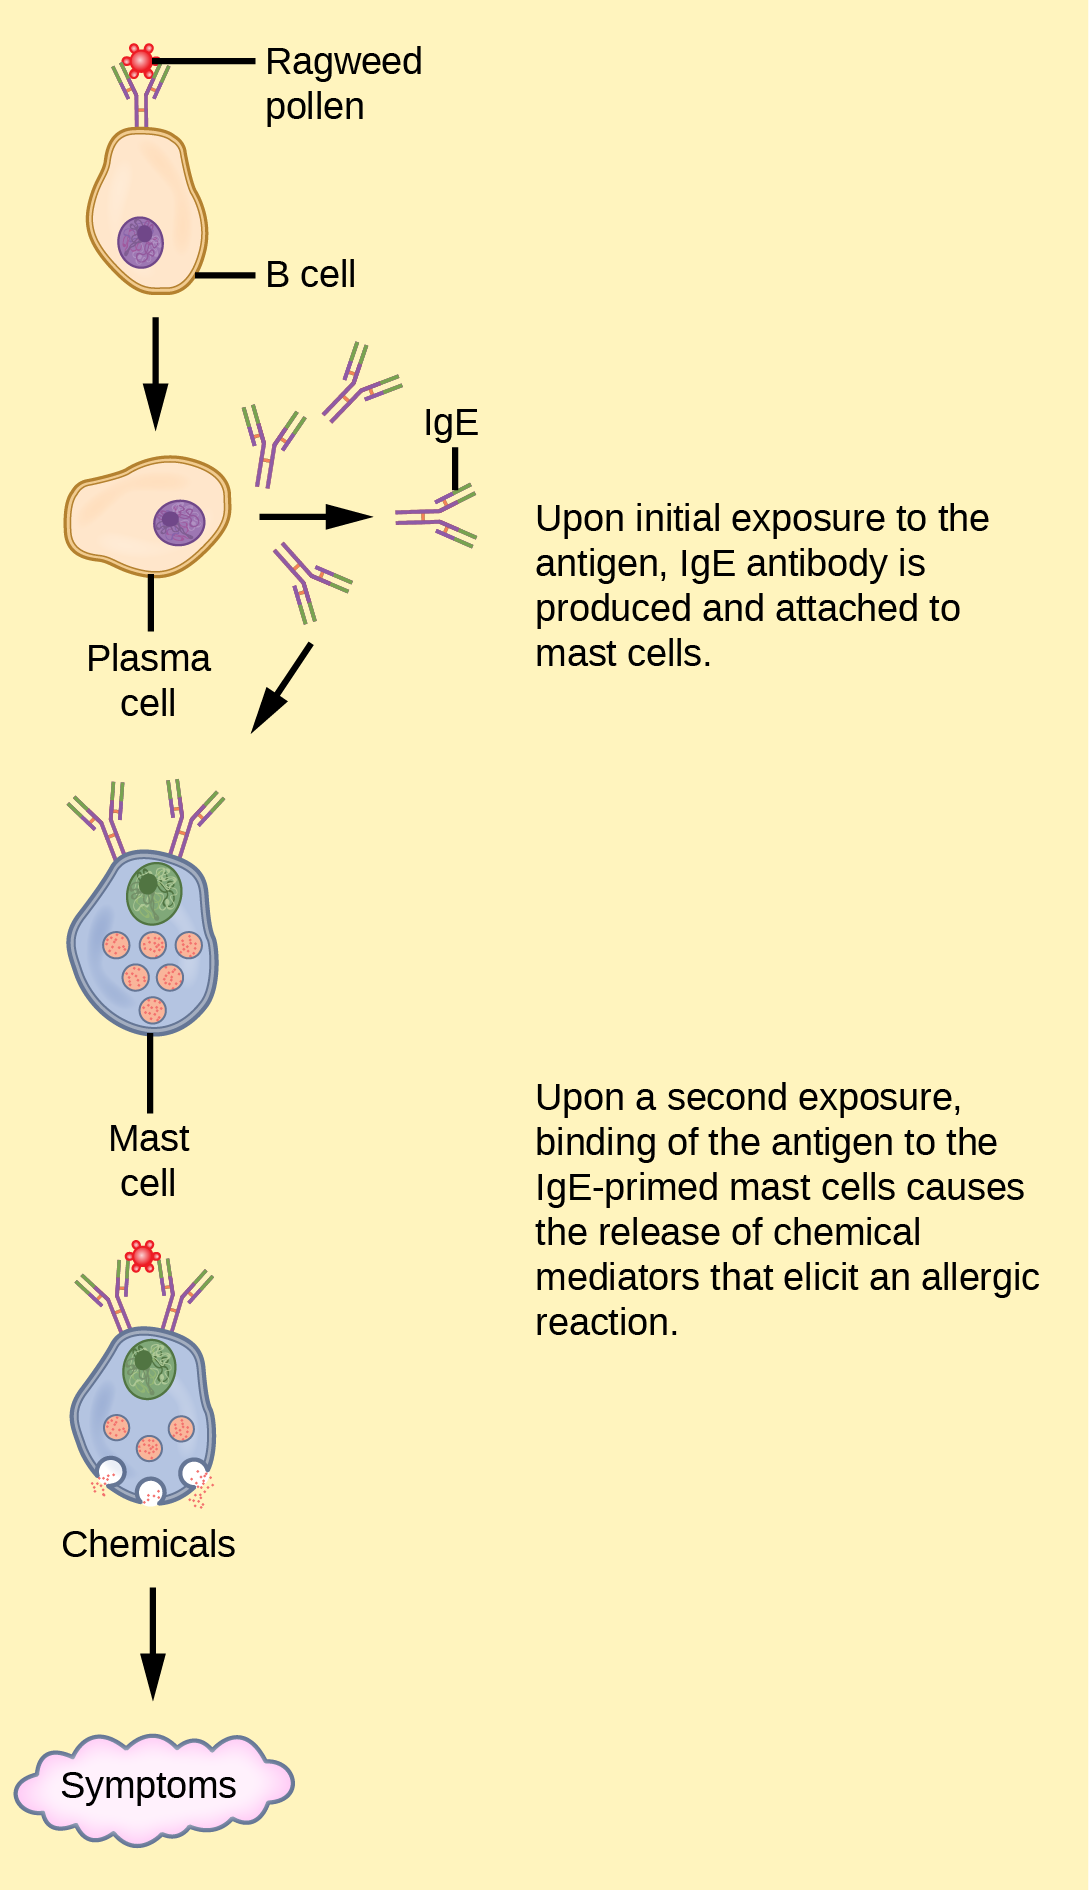 Illustration shows ragweed pollen attached to the surface of a B cell. The B cell is activated, producing plasma cells that release I g E. The I g E is presented on the surface of a mast cell. Upon a second exposure, binding of the antigen to the I g E primed mast cells causes the release of chemical mediators that elicit an allergic reaction.